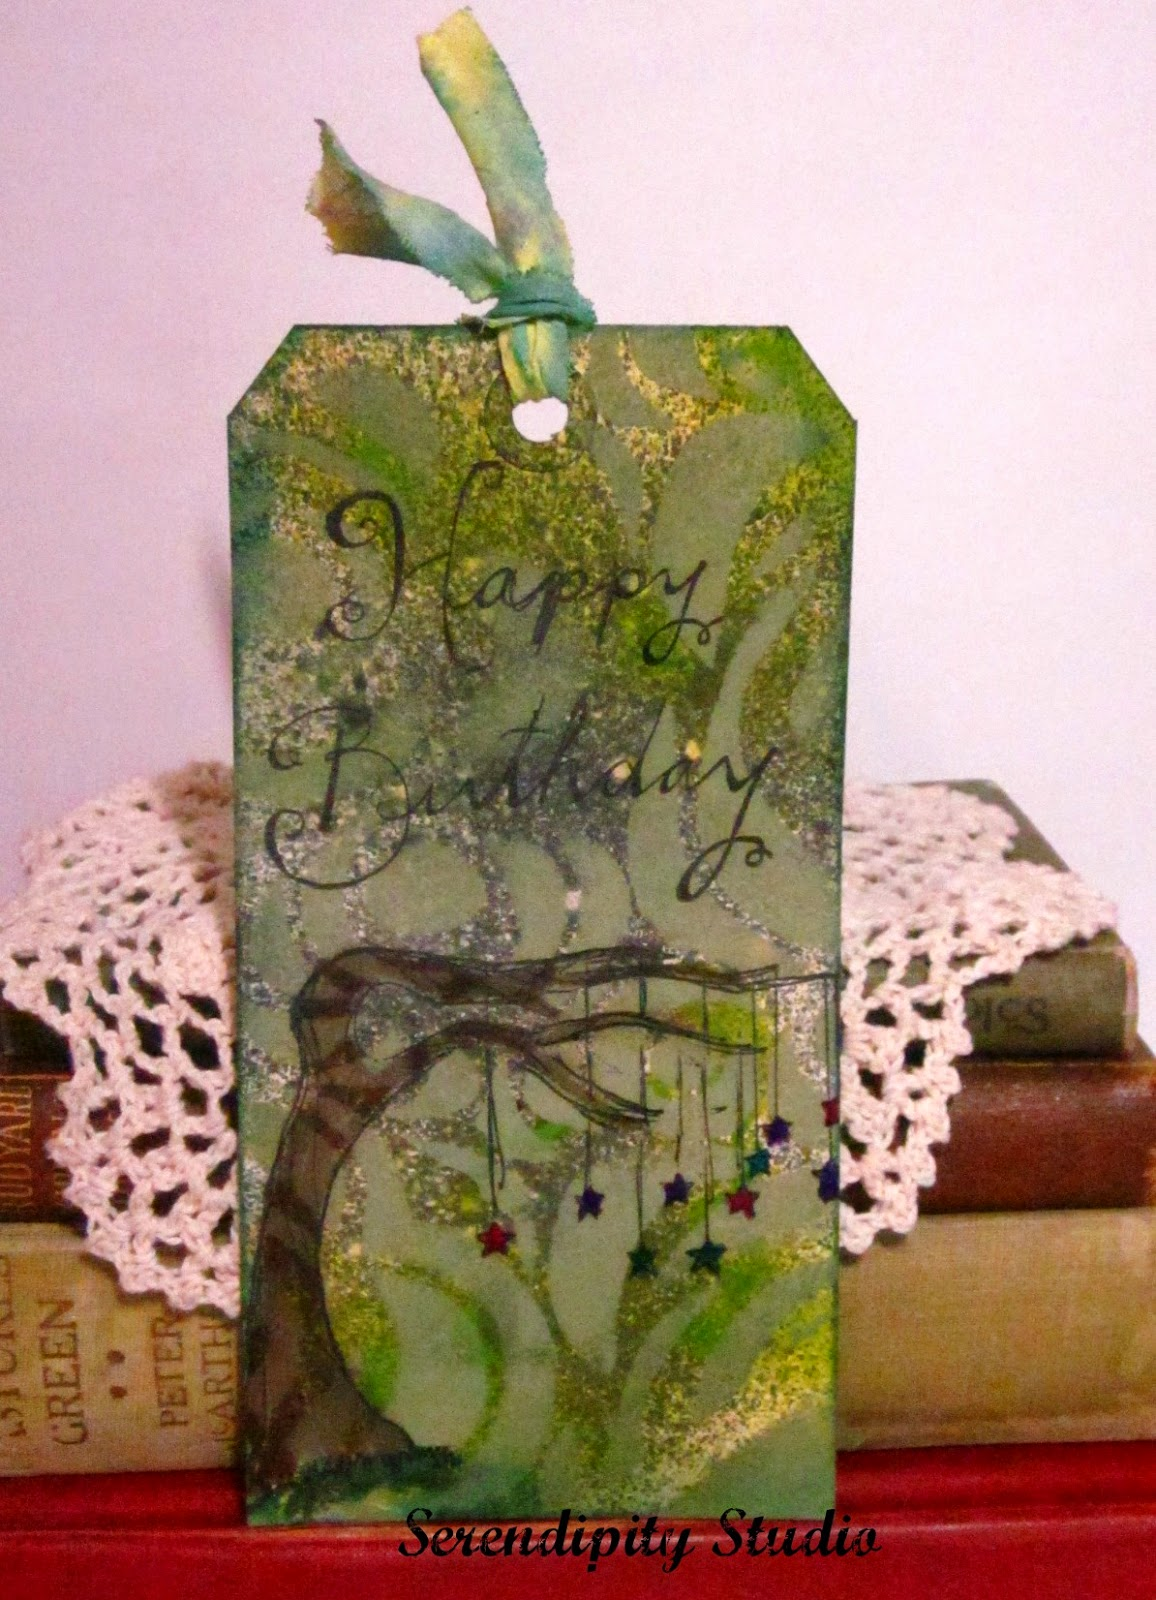 RubberMoon Shimmery tag, Happy Birthday stamp, Wishing Tree, created by www.serendipitystudiobycw.blogspot.com